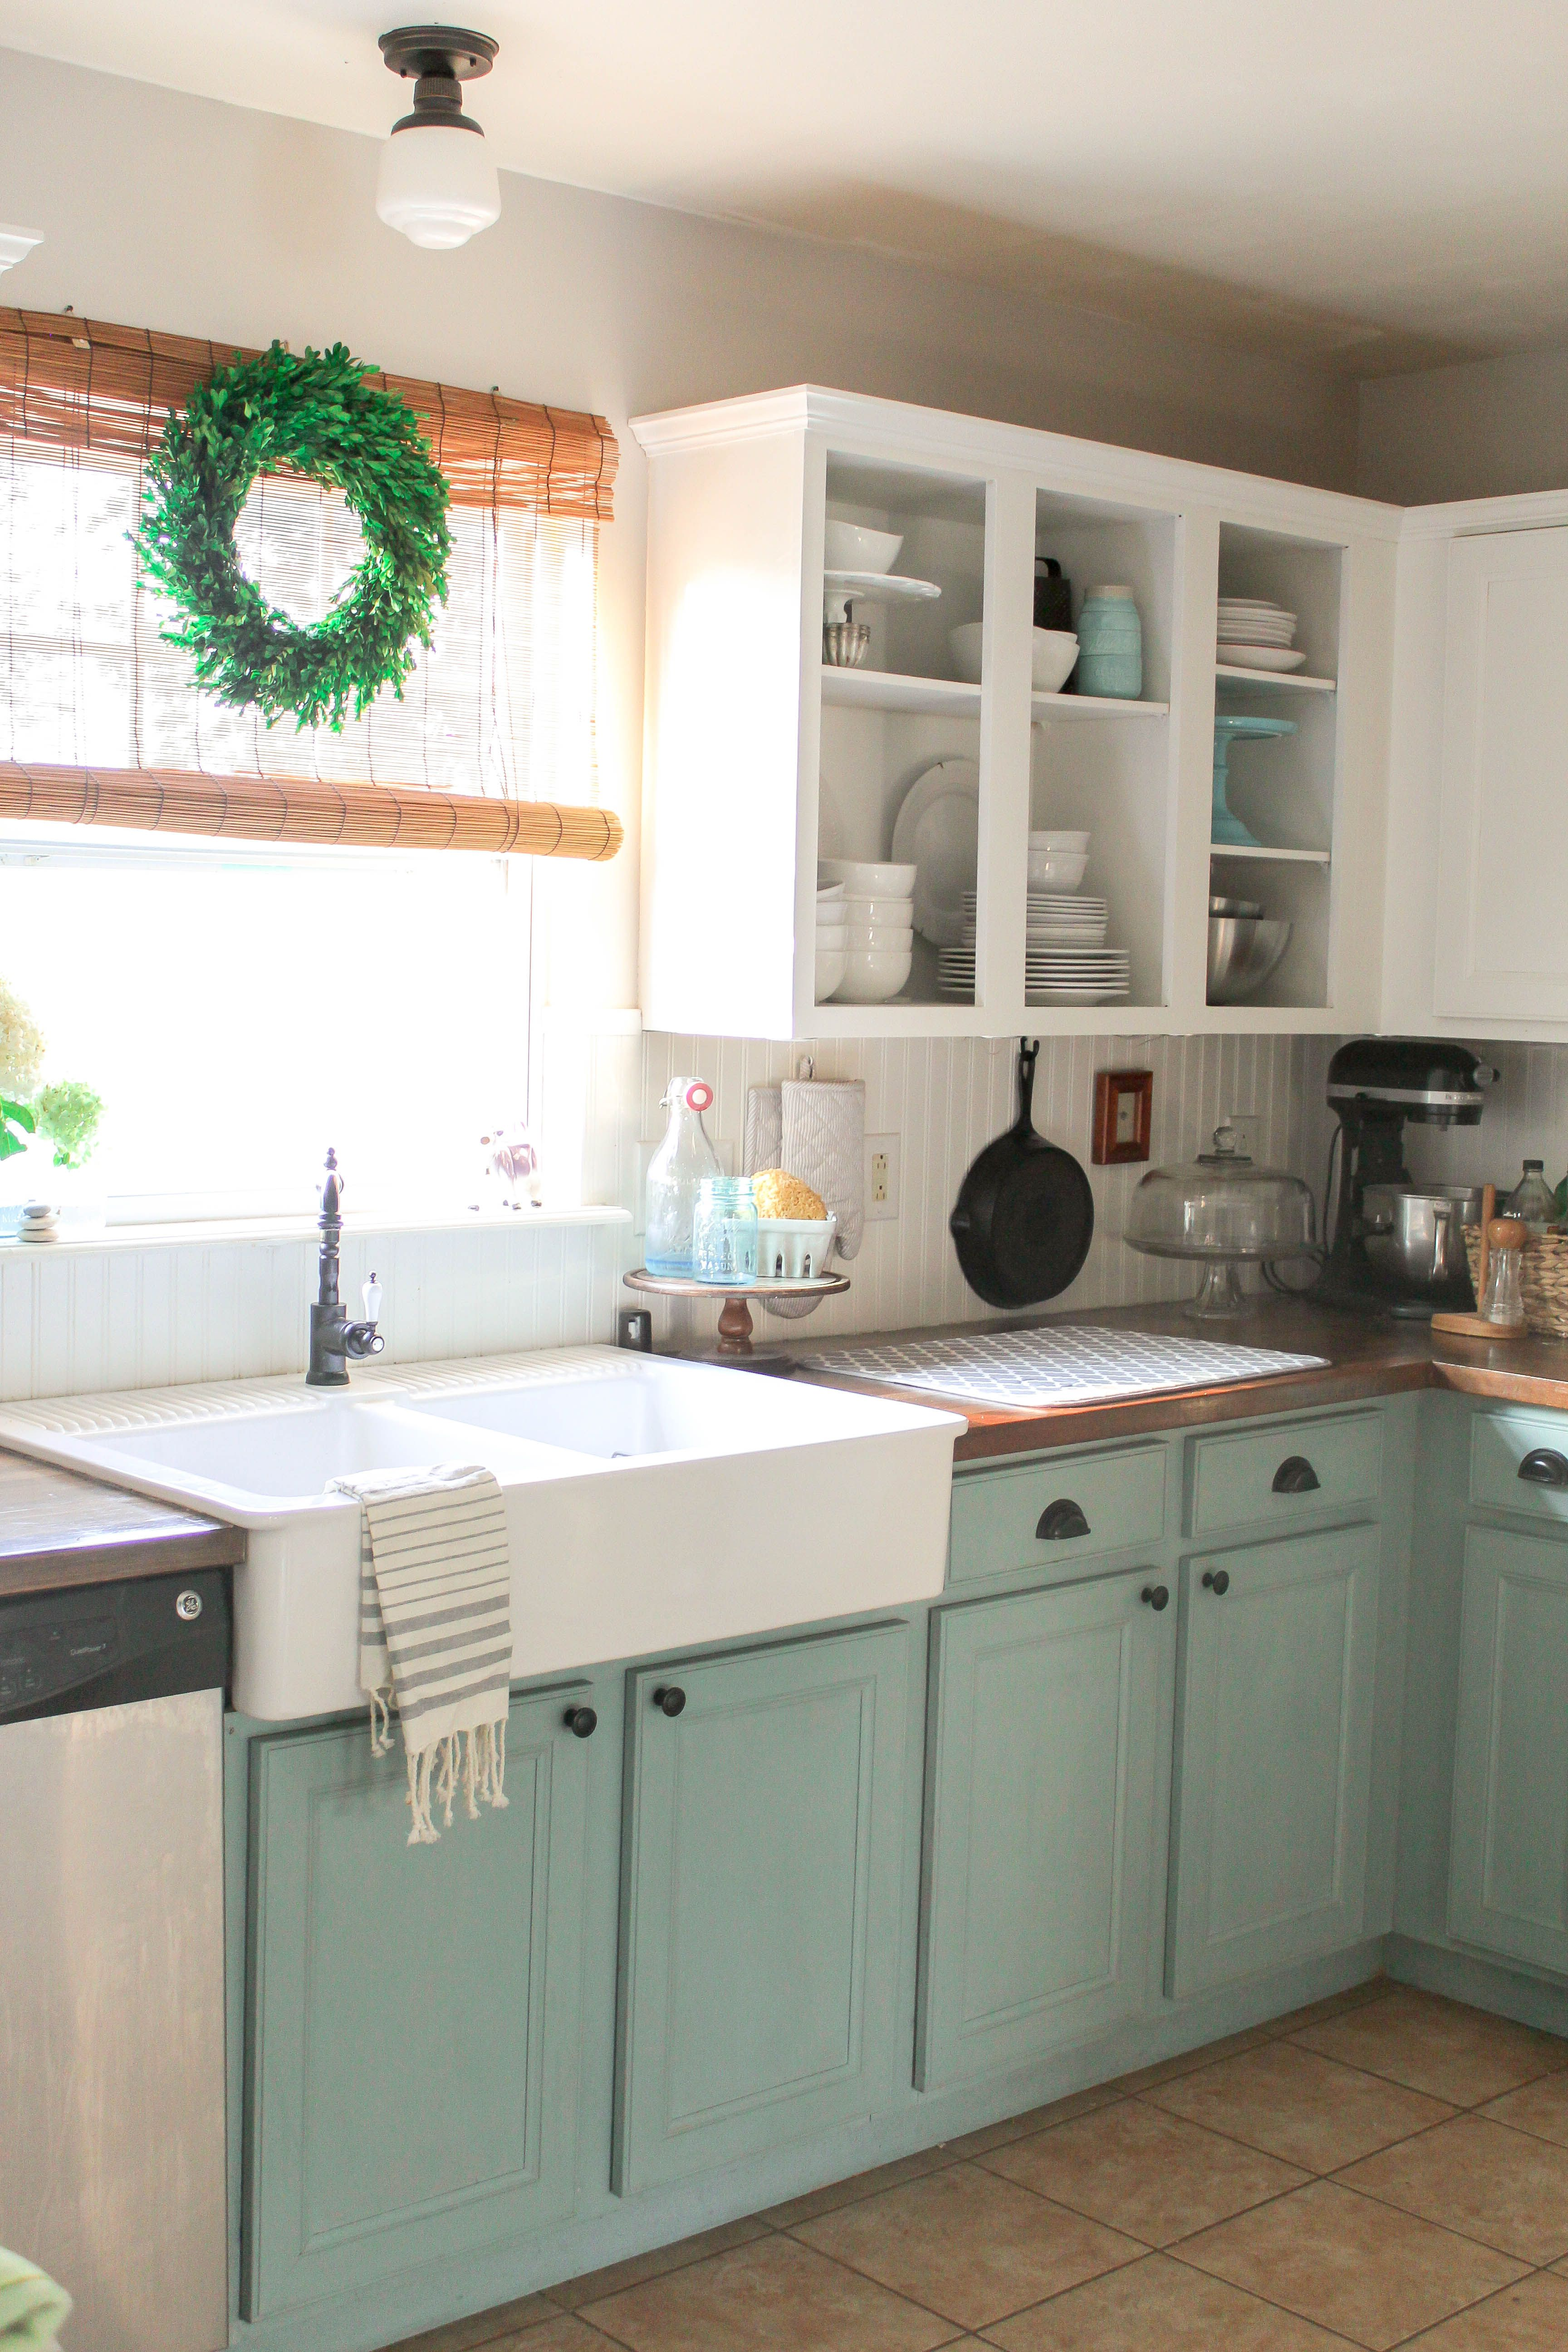 repainting kitchen cabinets Chalk Painted Kitchen Cabinets 2 Years Later